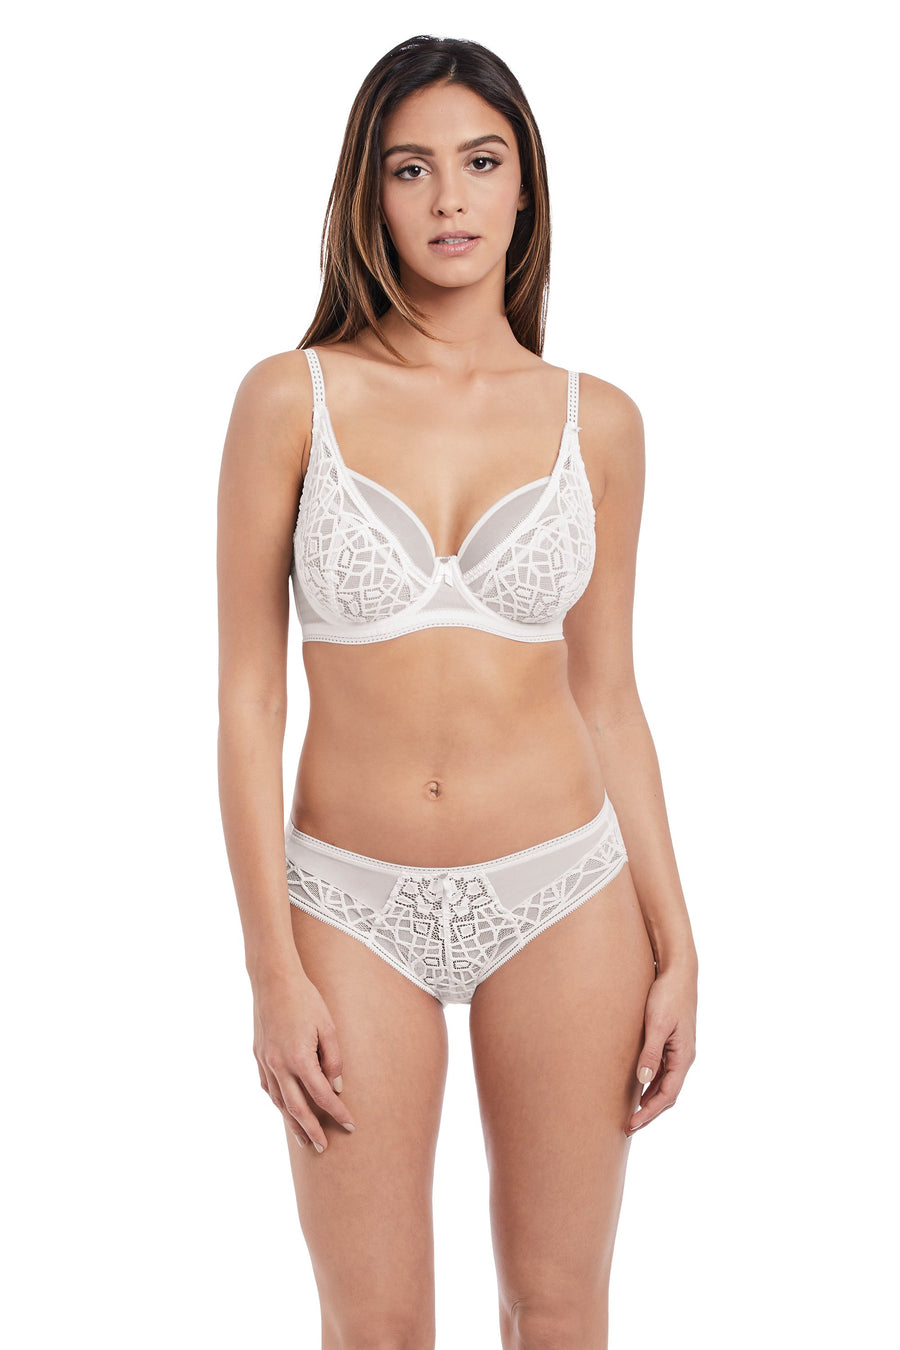 Freya - Soiree Lace White High Apex Bra